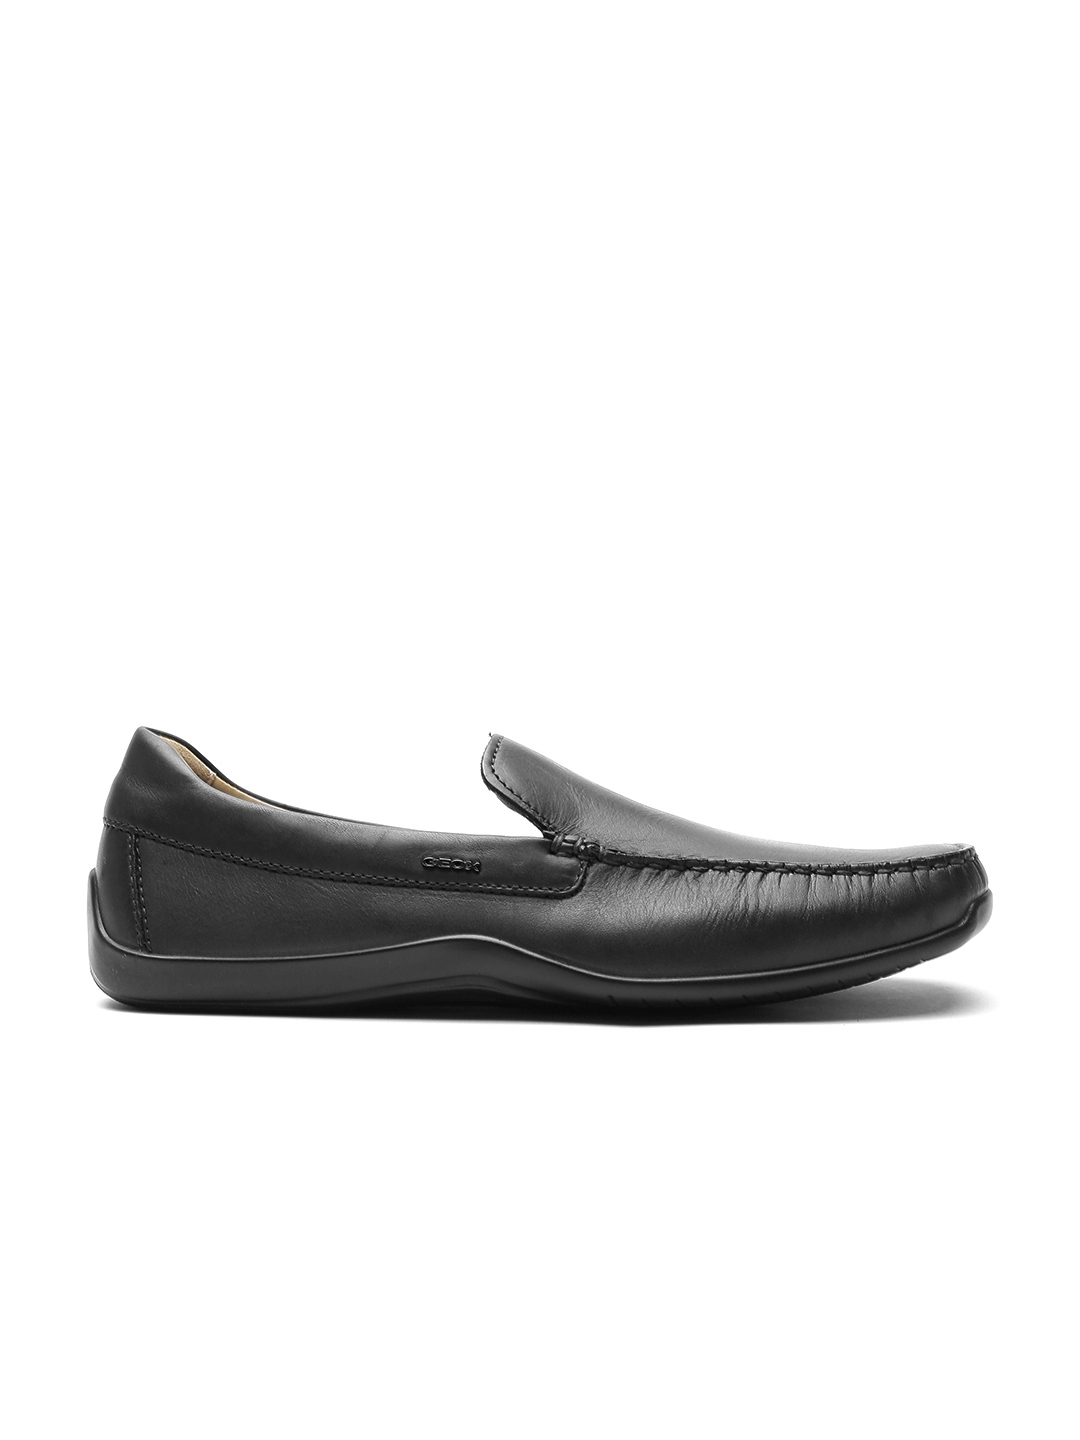 0741006cea30c Buy GEOX Respira Men Black Breathable Italian Patent Leather Loafers ...